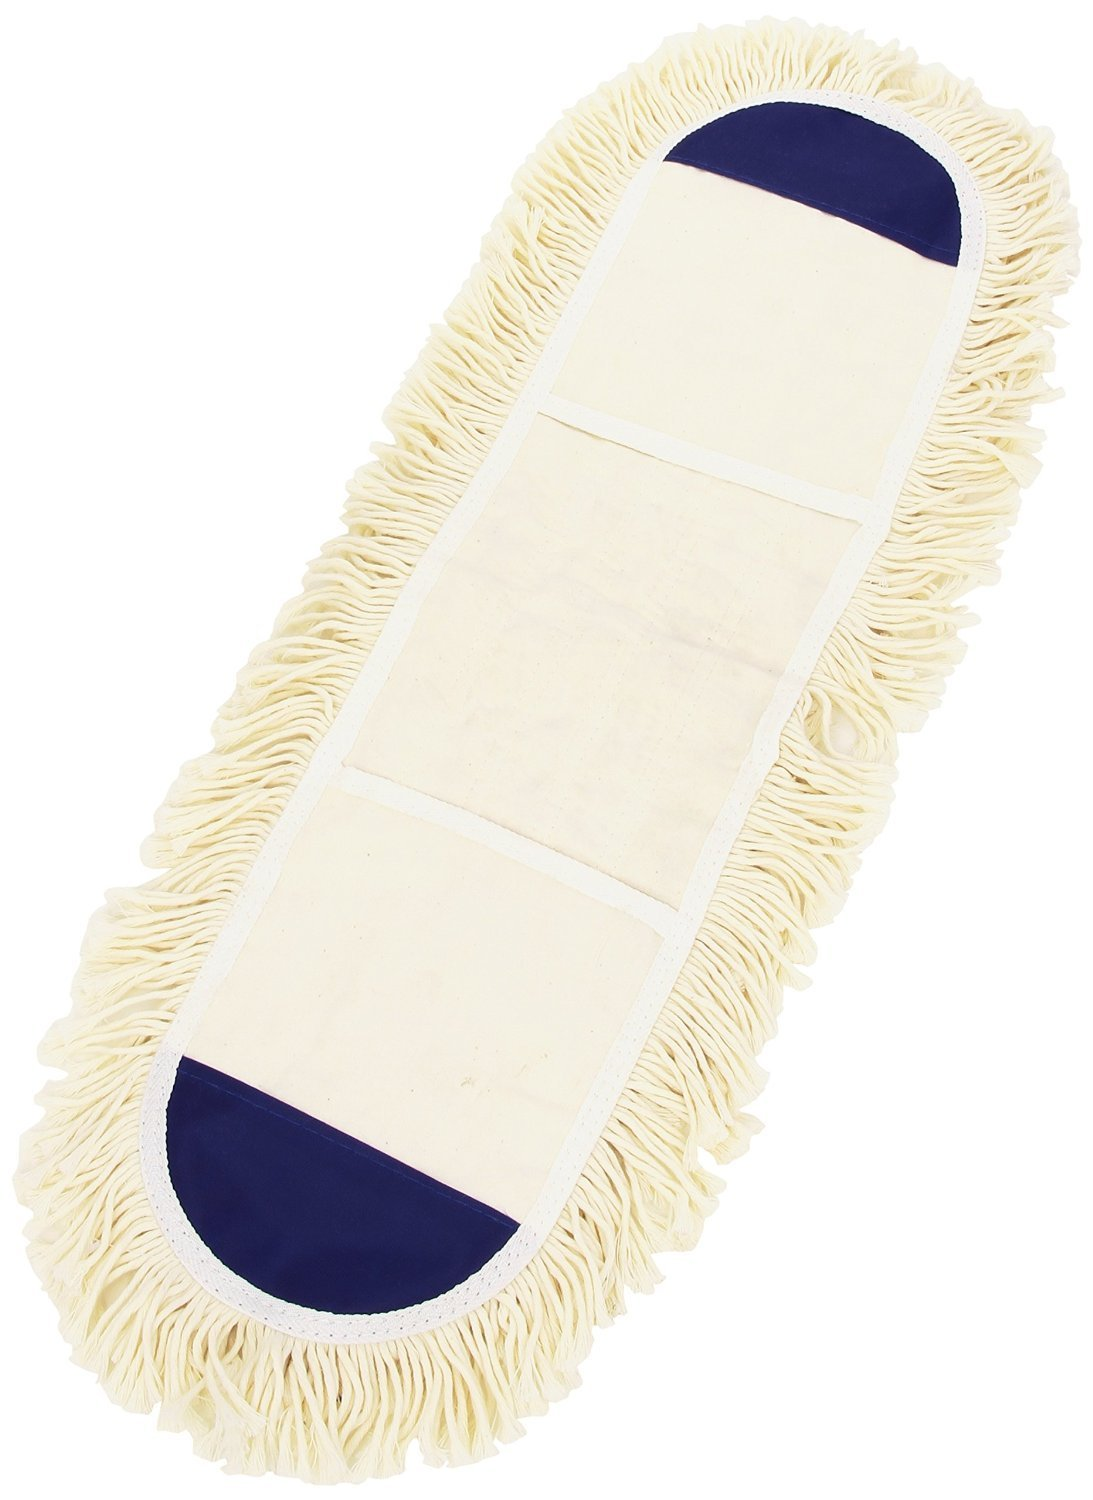 Dust mop for wood floors - Simple White Dust Mop For Wood Floor With No Stick And Navy Blue Accent On The